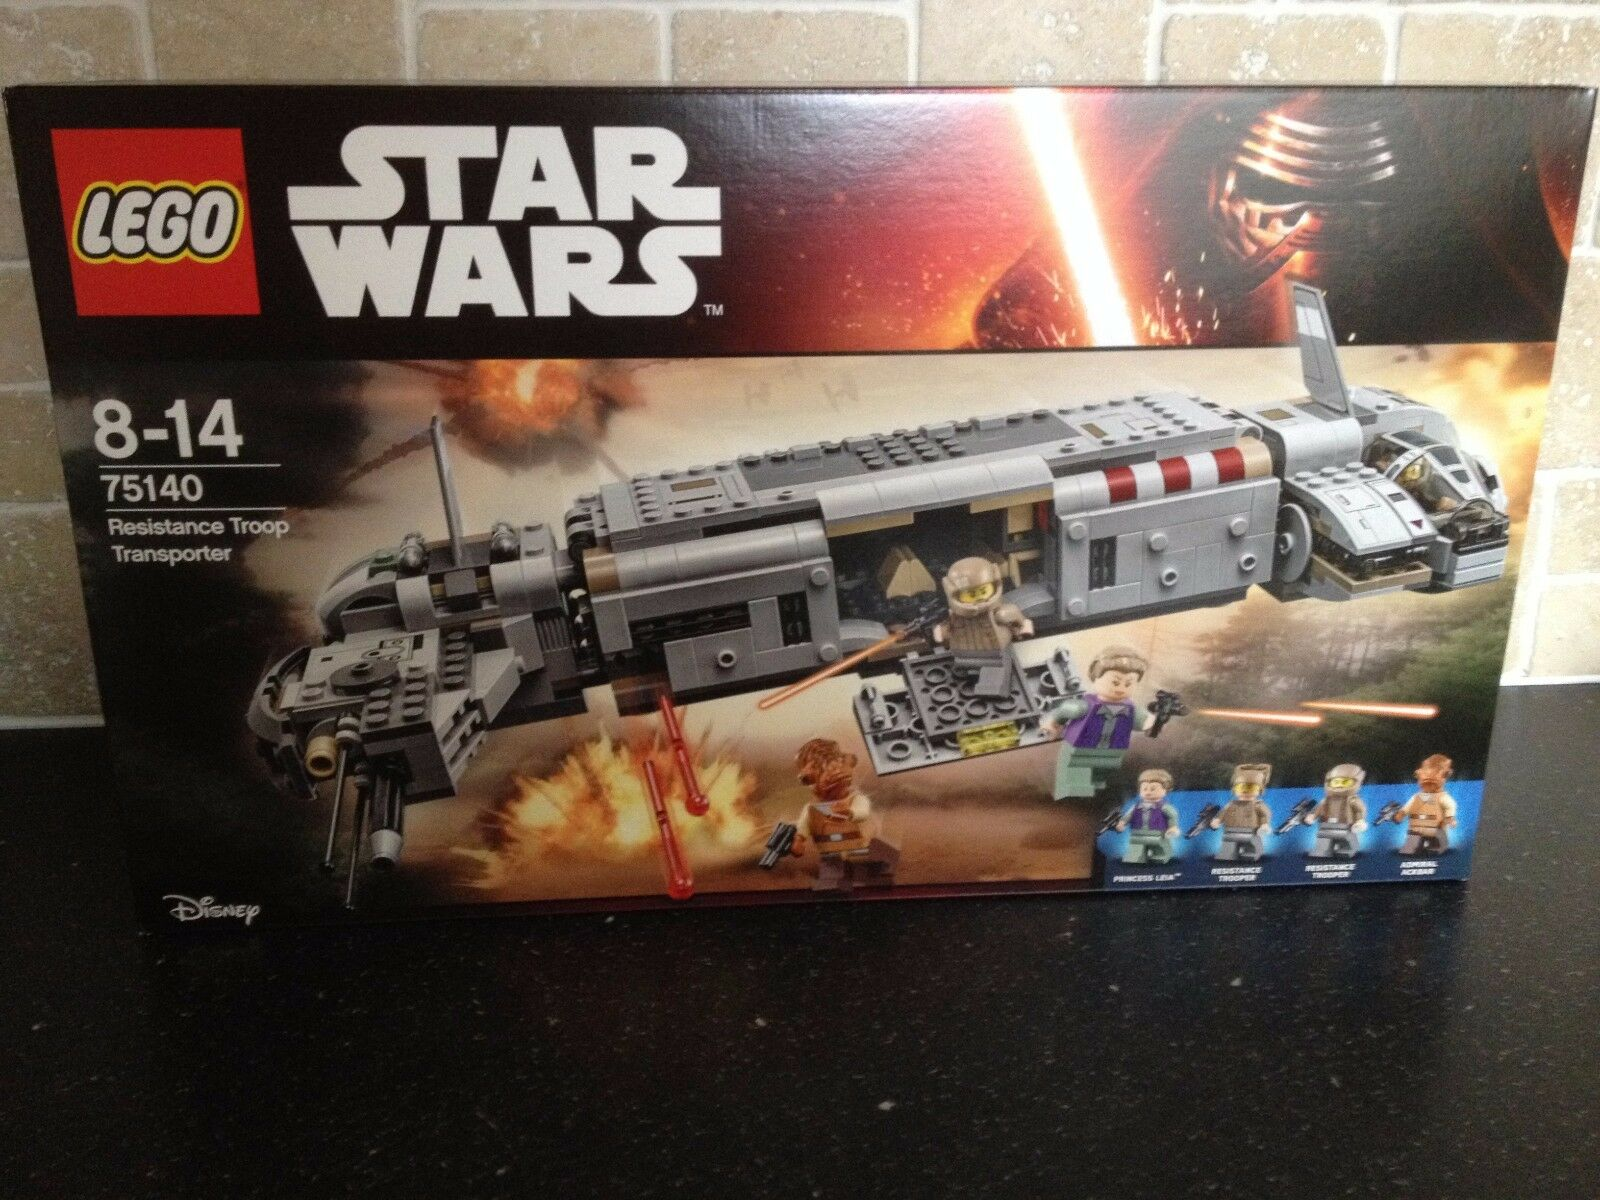 LEGO STAR WARS - 75140 Resistance Troop Transporter Brand New In Sealed Box